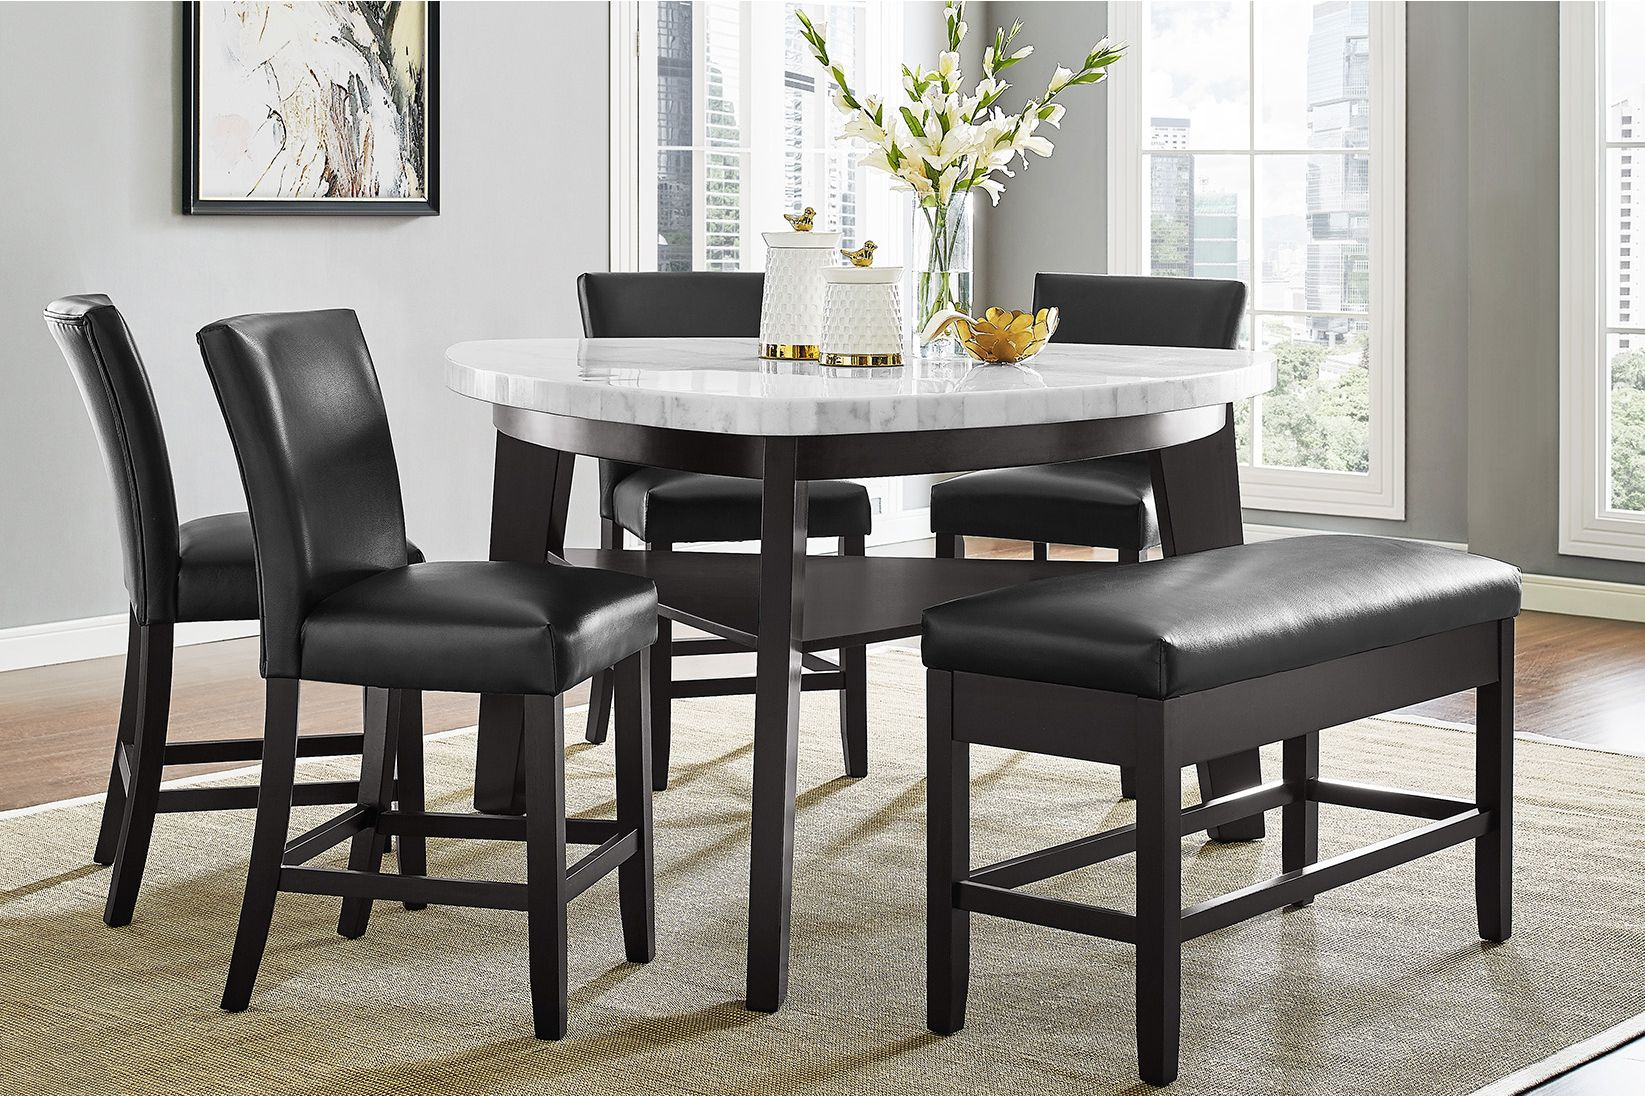 Carrara Marble Counter-Height Table + 4 Counter Chairs